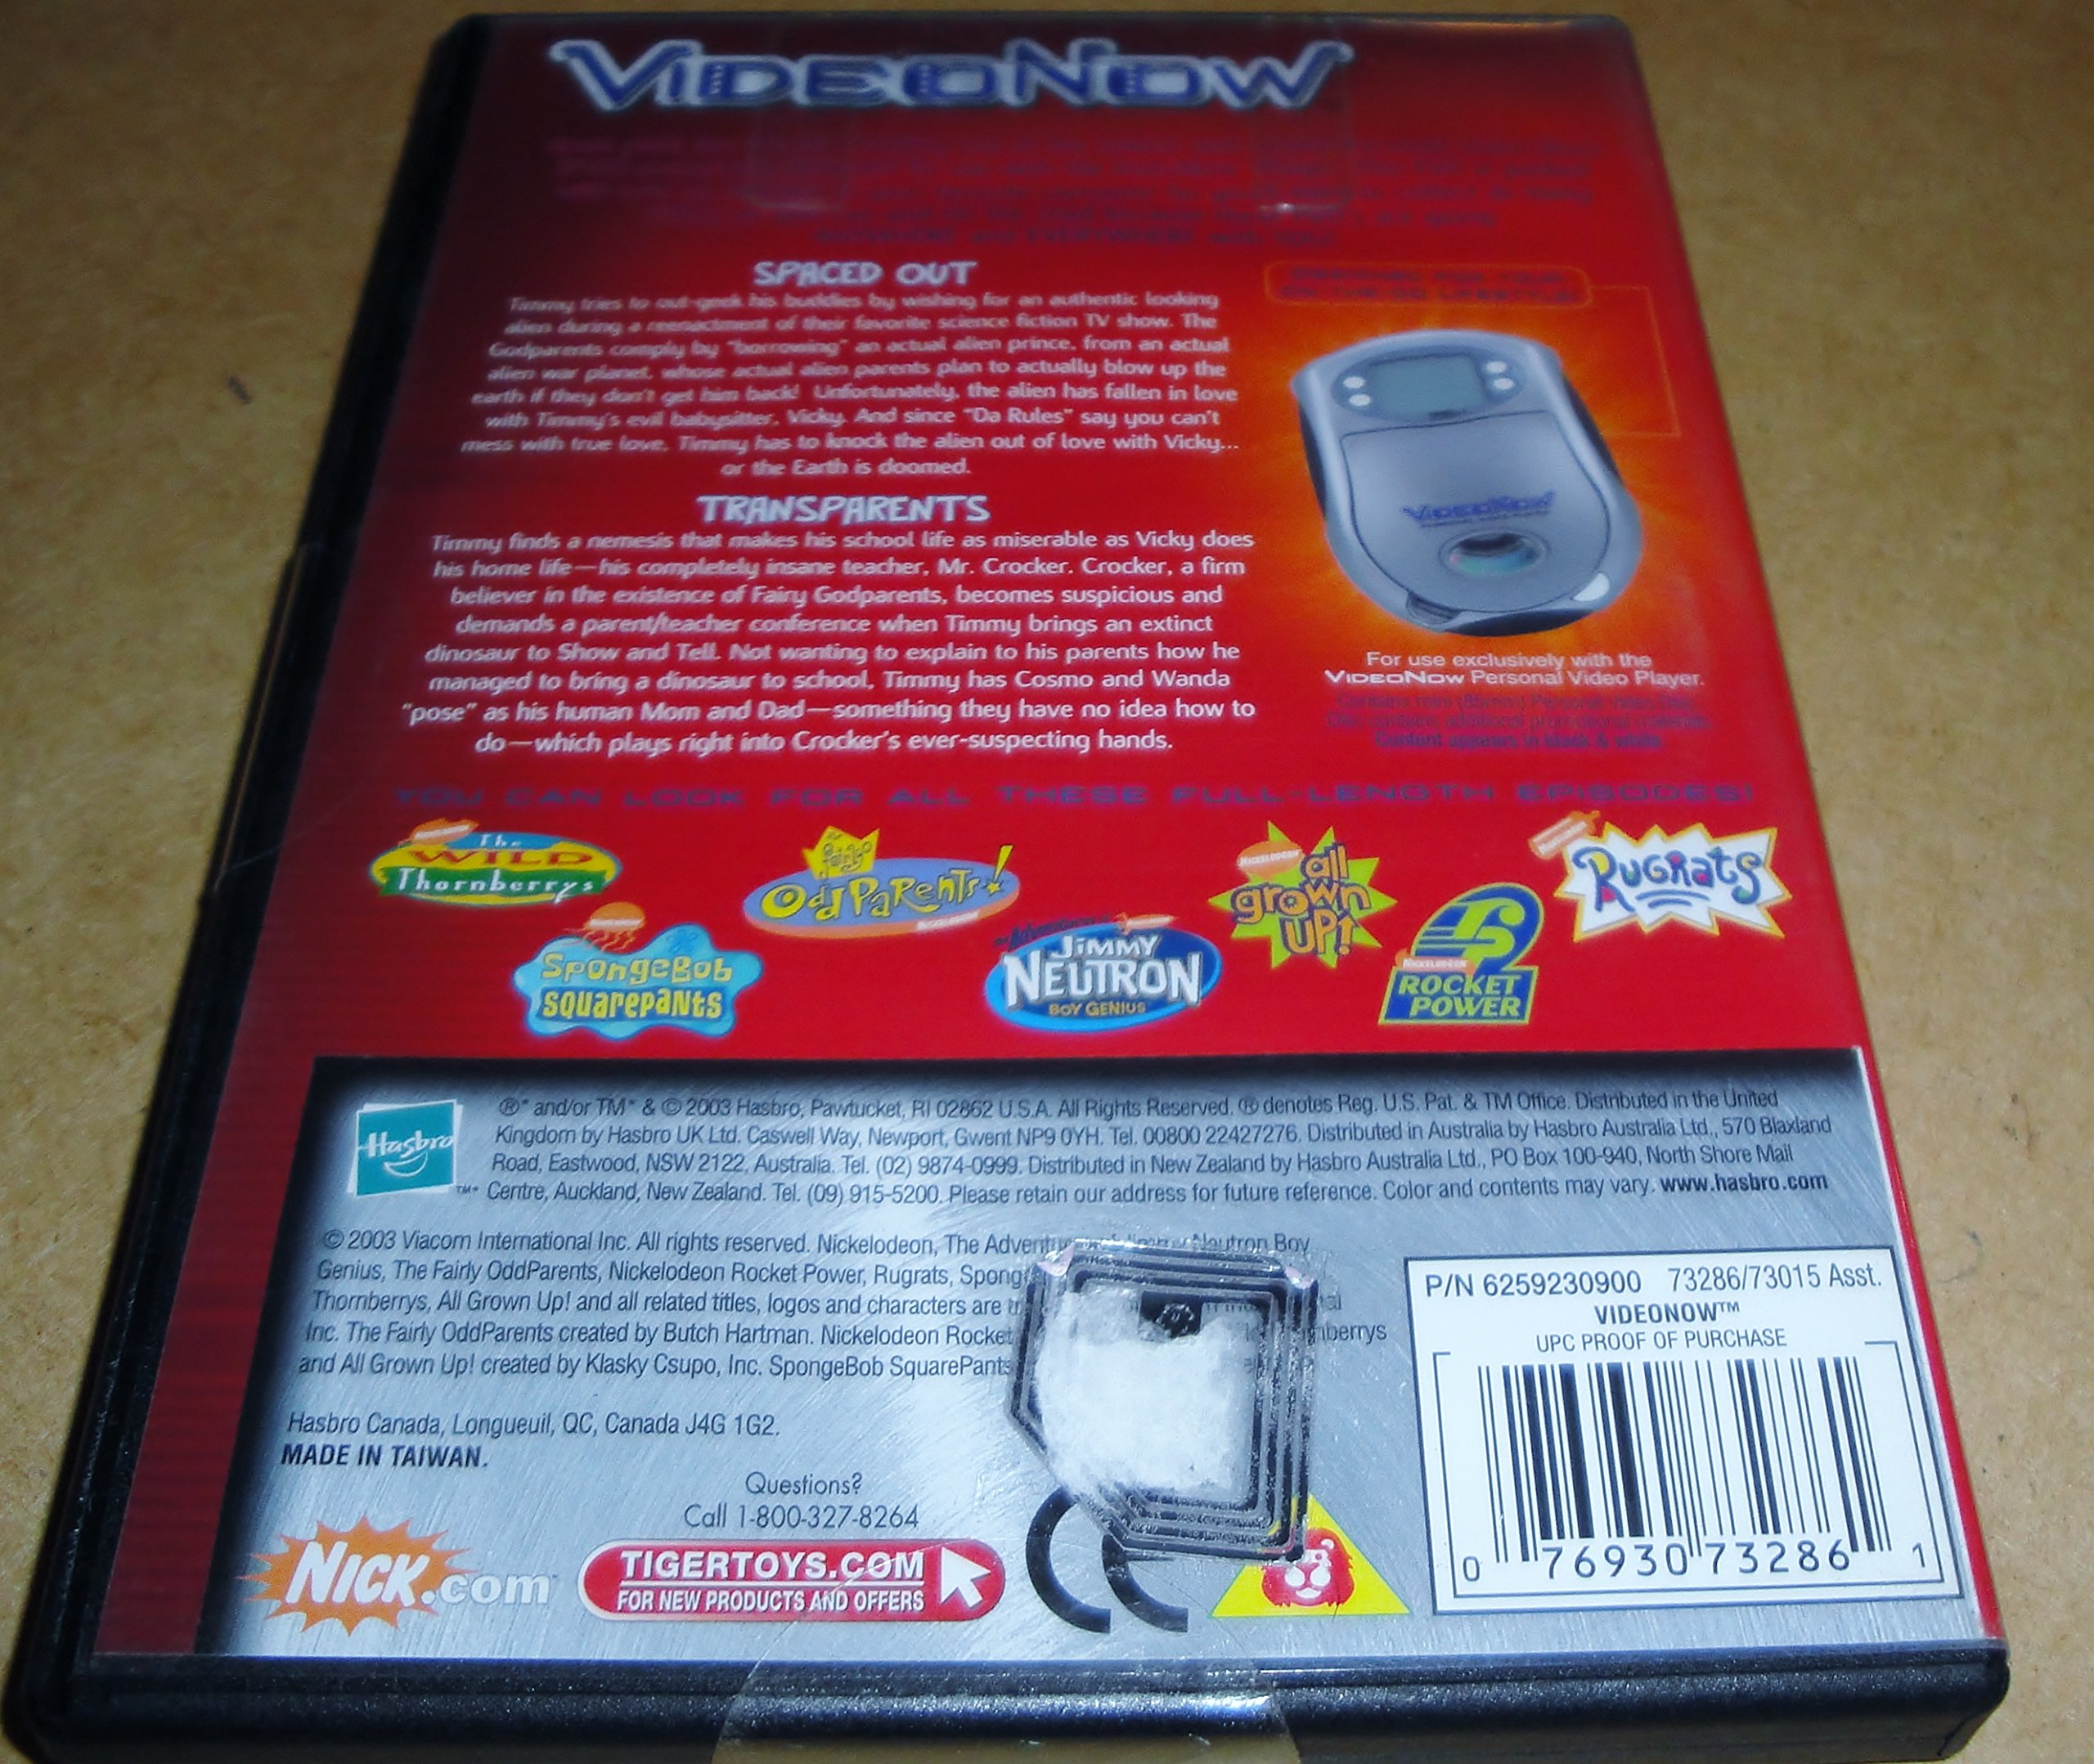 Nickelodeon Video Now The Fairly Odd Parents ''Spaced Out'' & ''Transparents'' by Video Now (Image #2)